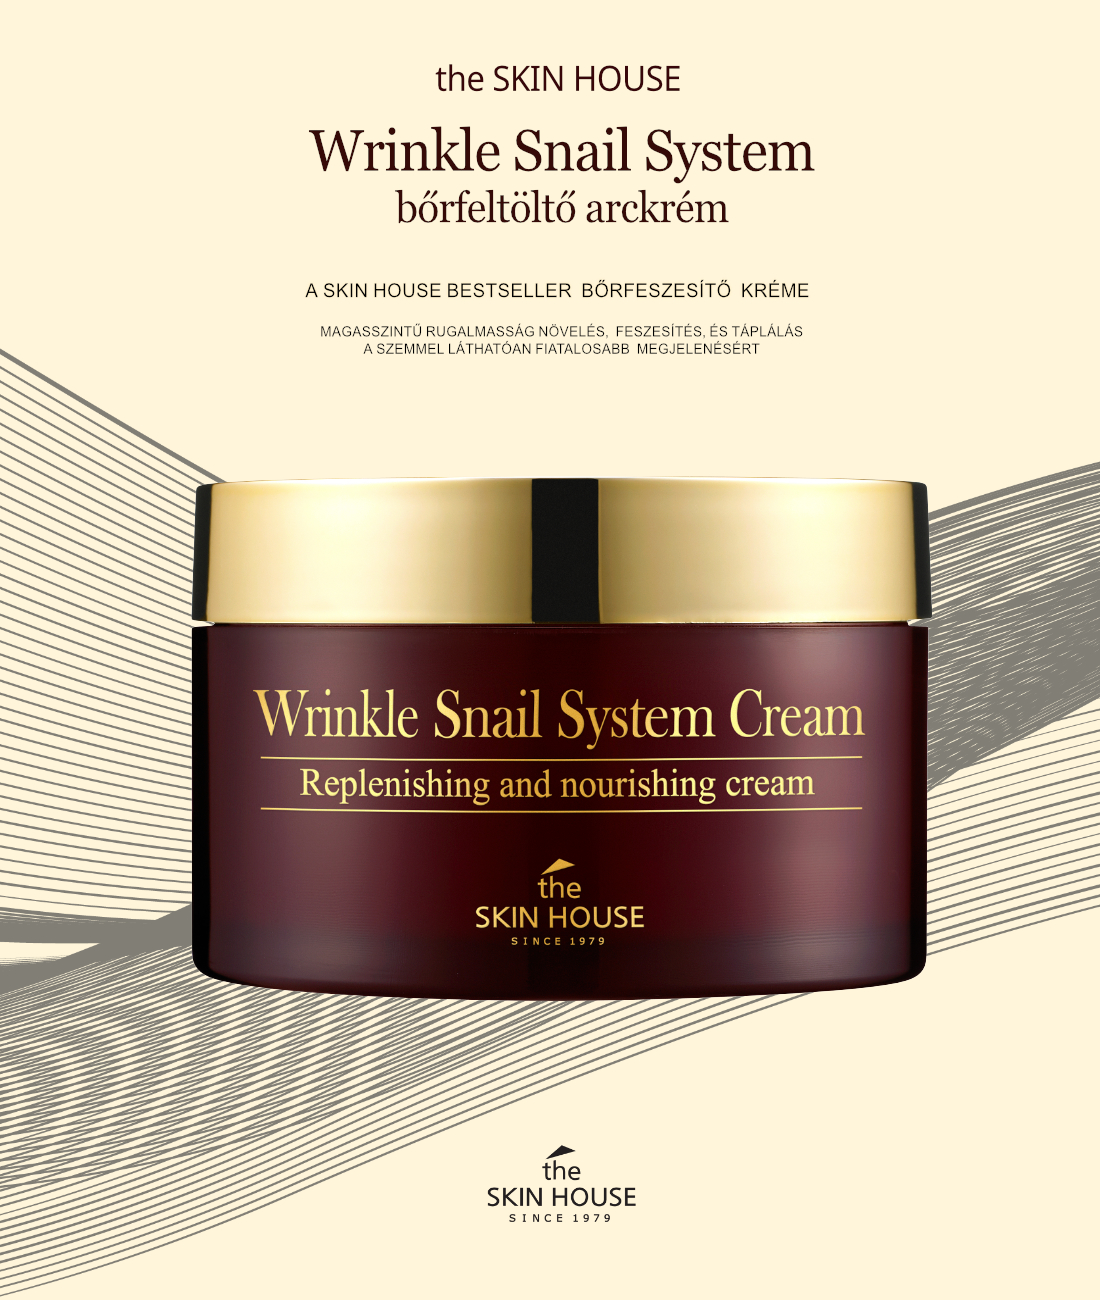 the-skin-house-Wrinkle-snail-system-krem-leiras